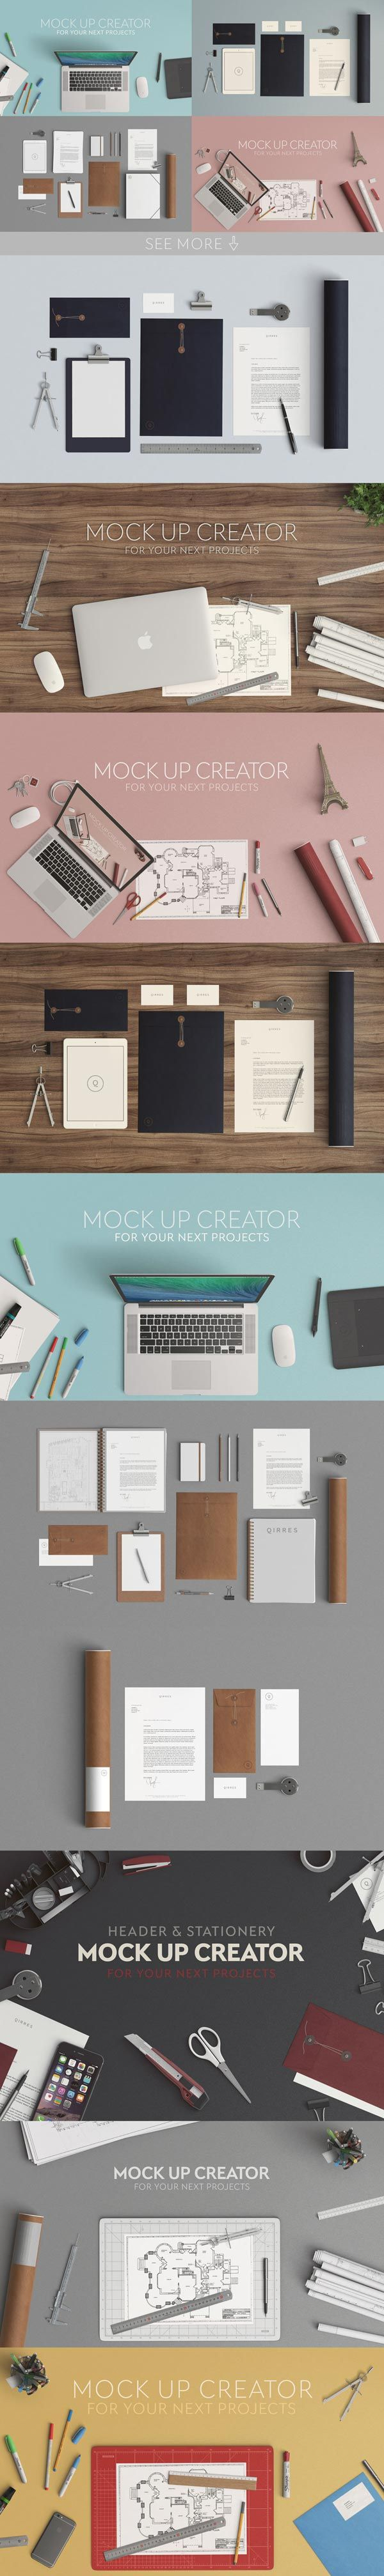 The perfect mock up creater for your next design and identity projects. #mockup #stationery